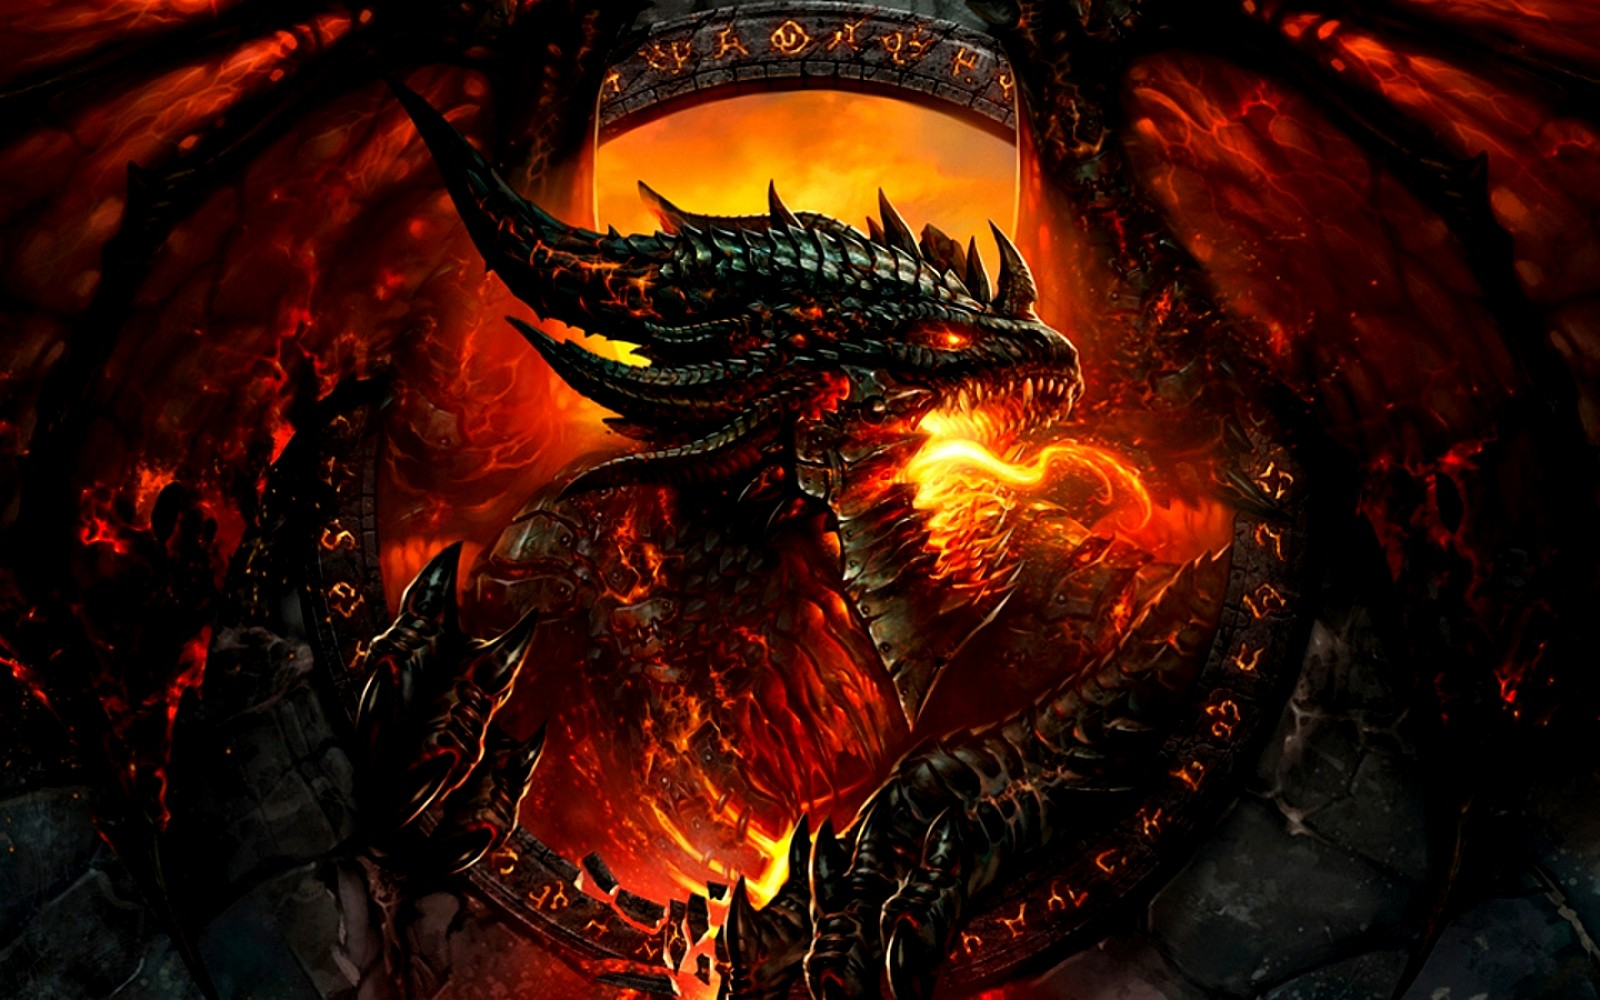 Cool Dragons Images amp Pictures   Becuo 1600x1000